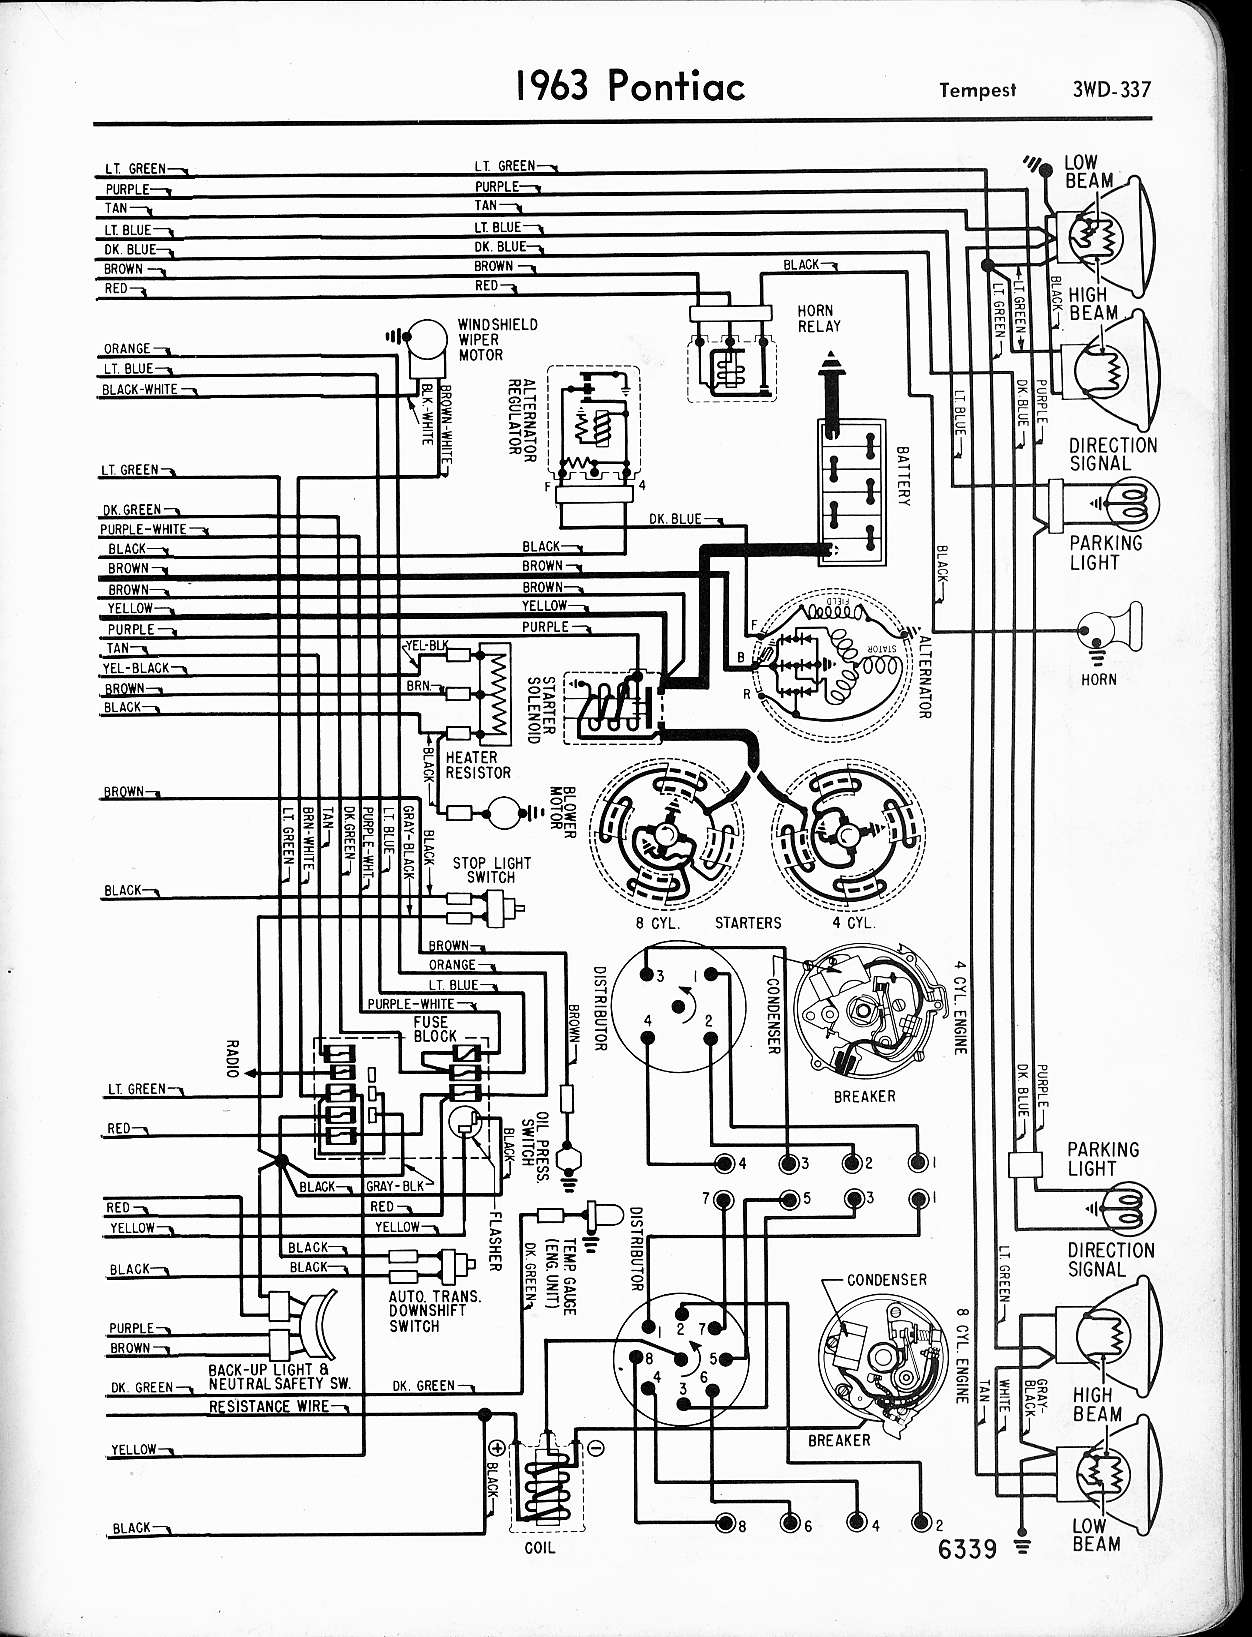 1970 Impala Wiring Diagram - Ubm.bbzbrighton.uk • on 1964 impala flywheel, 2007 impala parts diagram, 1964 impala brochure, 1964 impala air cleaner, 1964 impala motor, 1964 impala horn, 1964 impala interior, 1964 impala steering, 1964 impala firewall, 1964 impala wagon, 1964 impala repair, 1964 impala super sport, 1964 impala hydraulics, 1964 impala clock, 1964 impala brakes, 1964 impala ignition switch, 1964 impala transmission, 1964 impala distributor, 1964 impala headlights, 1964 impala suspension,